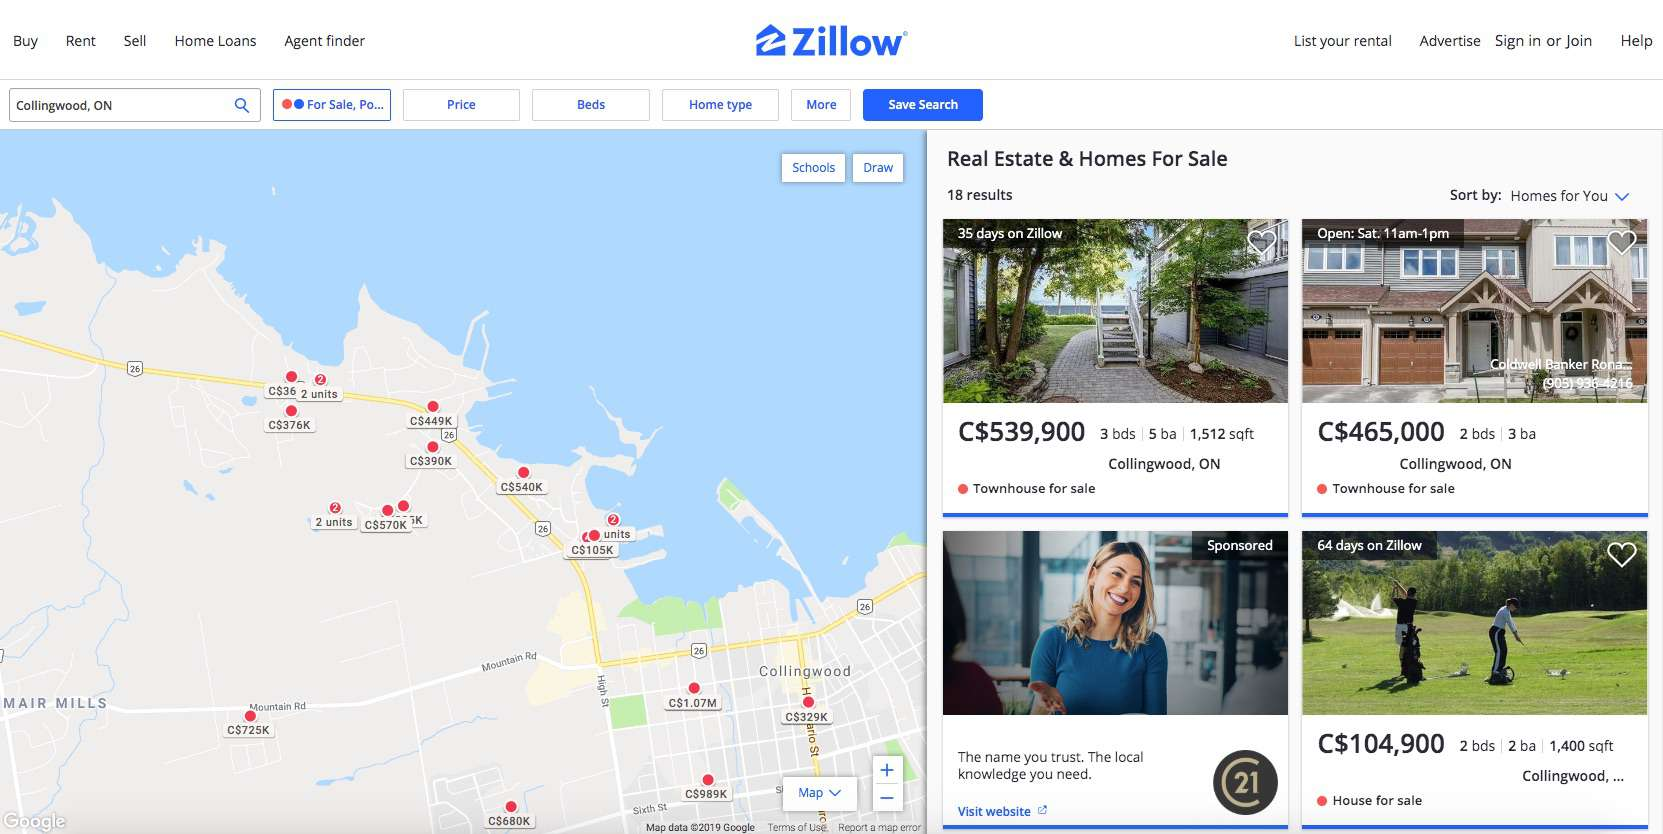 Using Zillow for All Your Real Estate Needs on